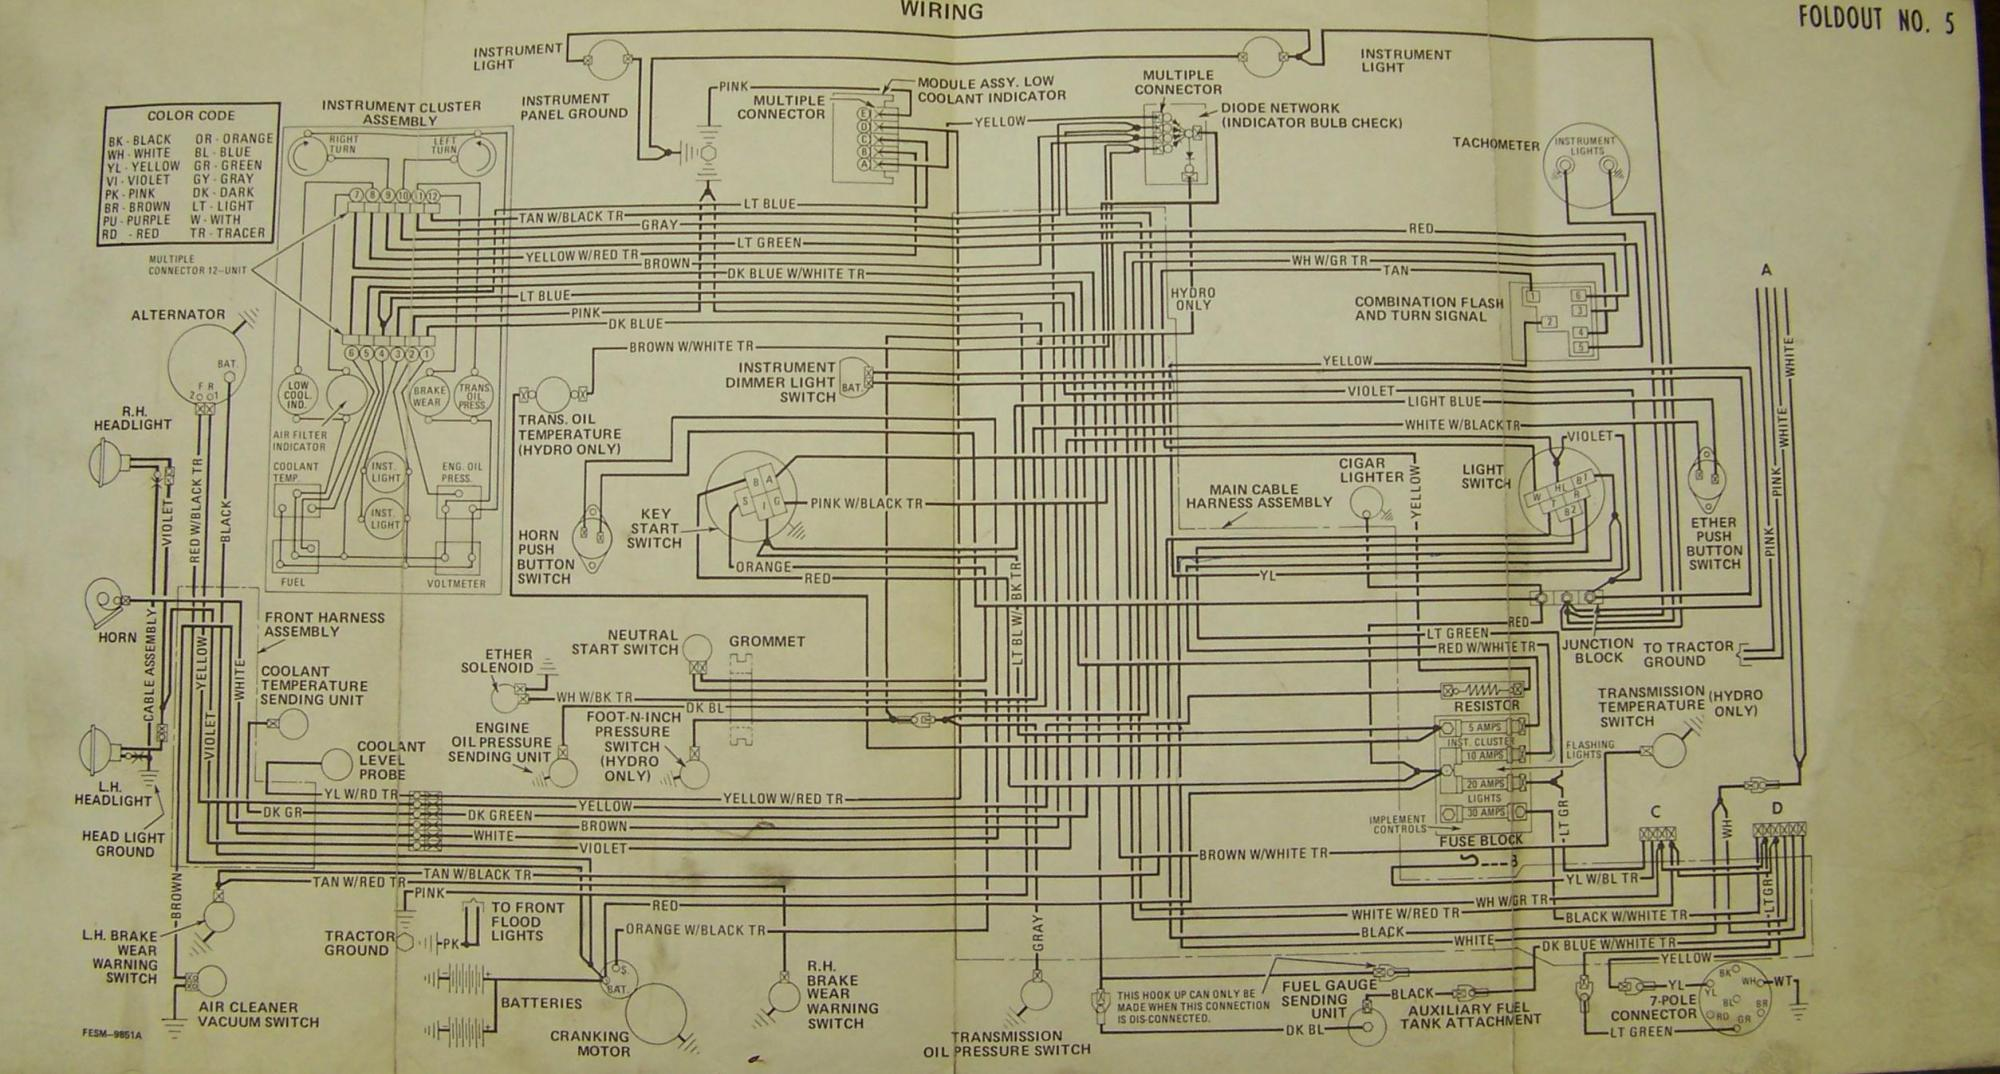 hight resolution of carter gruenewald co inc ih farmall tractor electrical wiring ih 656 wiring diagram ih 826 wiring diagram